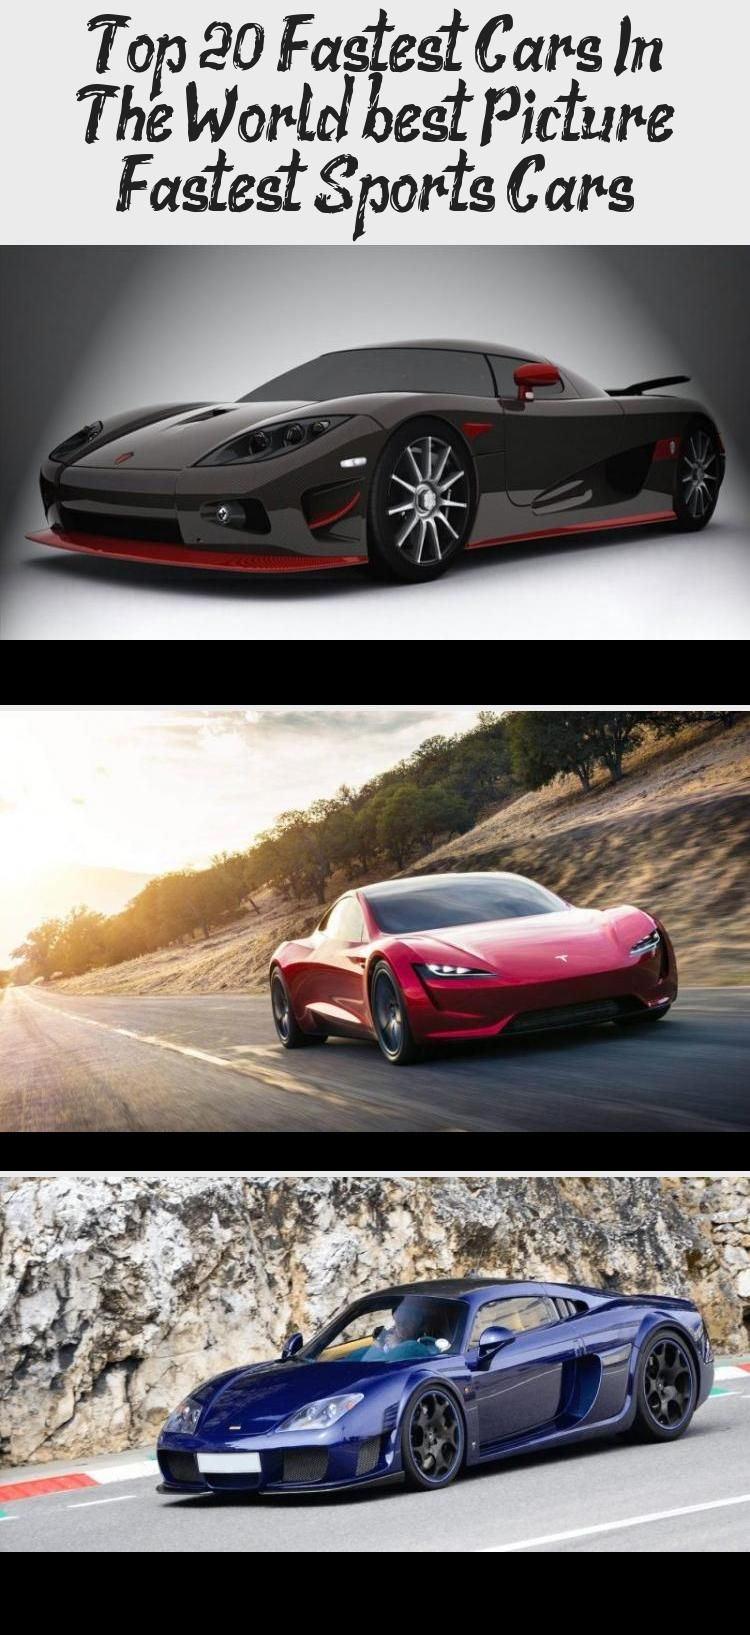 Top 20 Fastest Cars In The World Best Picture Fastest Sports Cars Car In 2020 Fast Sports Cars Sports Cars Fast Cars